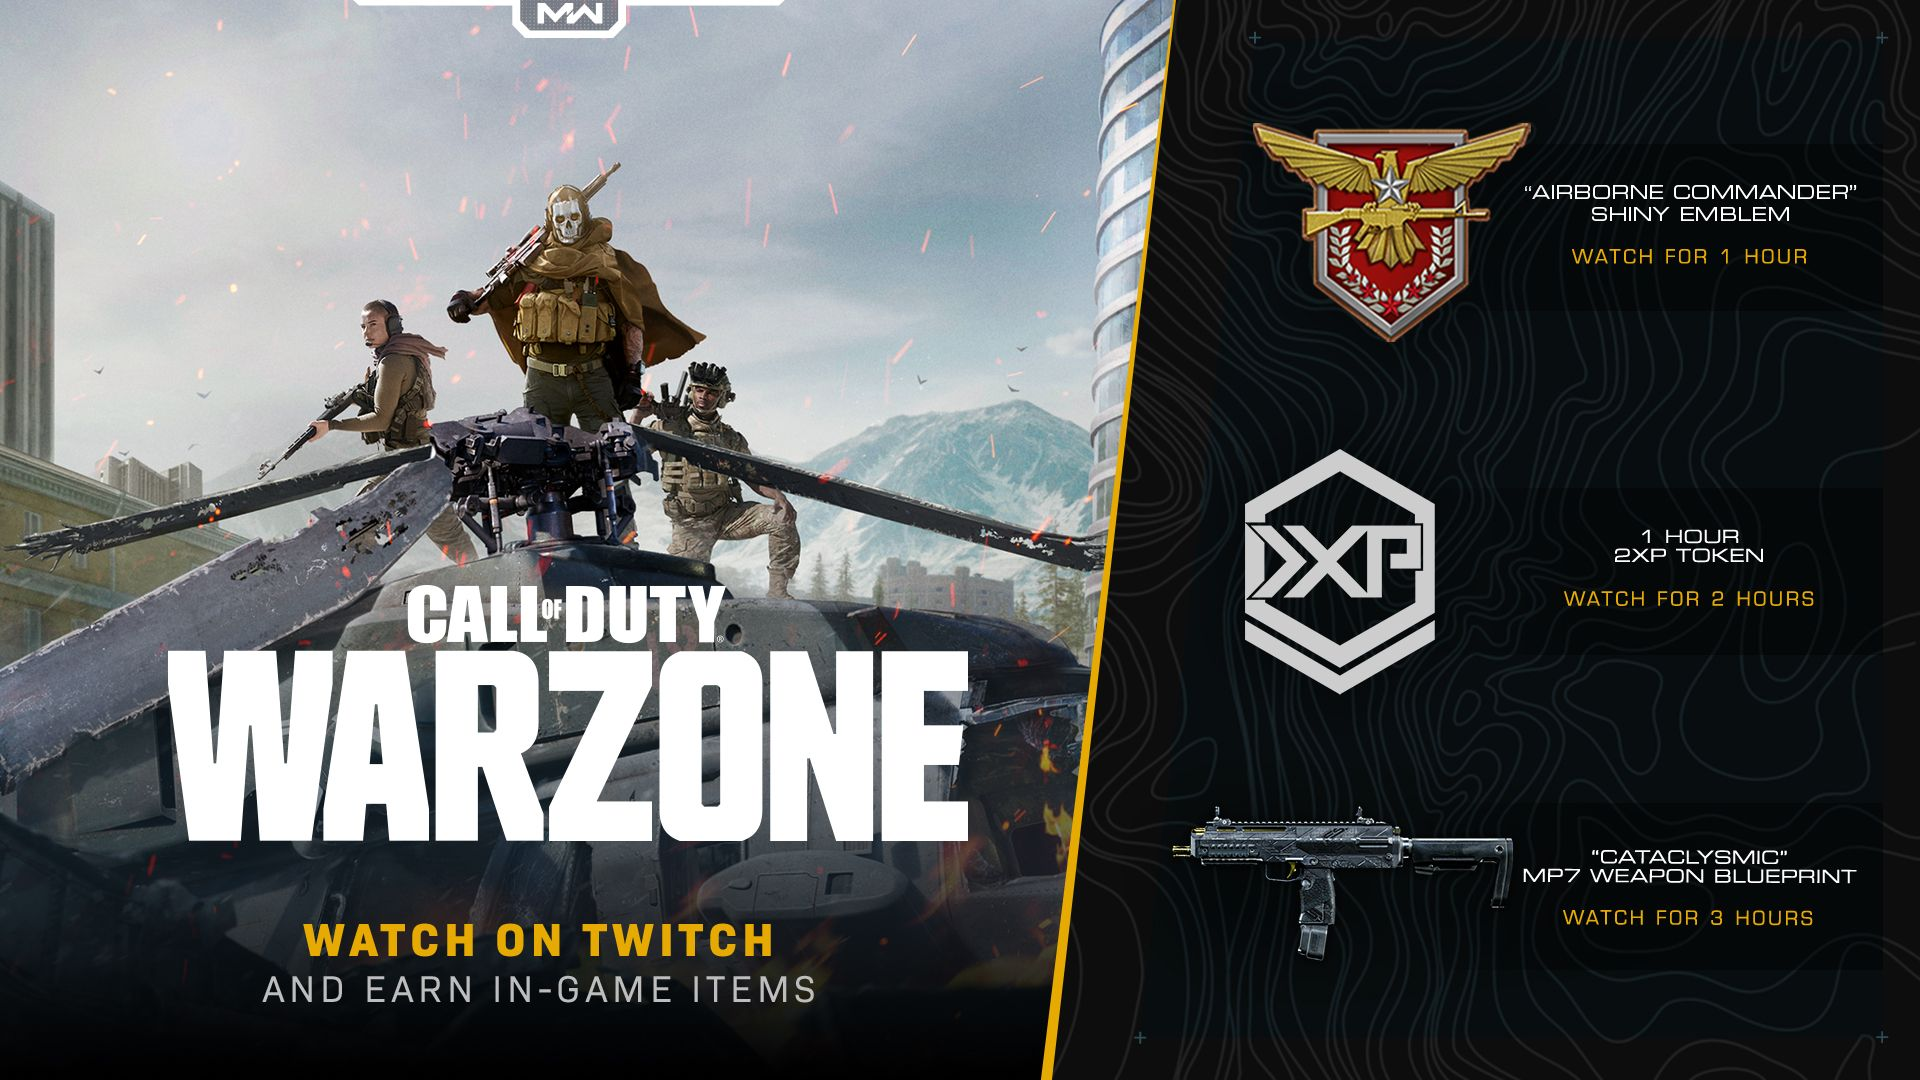 Earn Rewards To Equip In Modern Warfare Multiplayer Special Ops And Warzone By Watching Twitch In 2020 Special Ops Modern Warfare Twitch